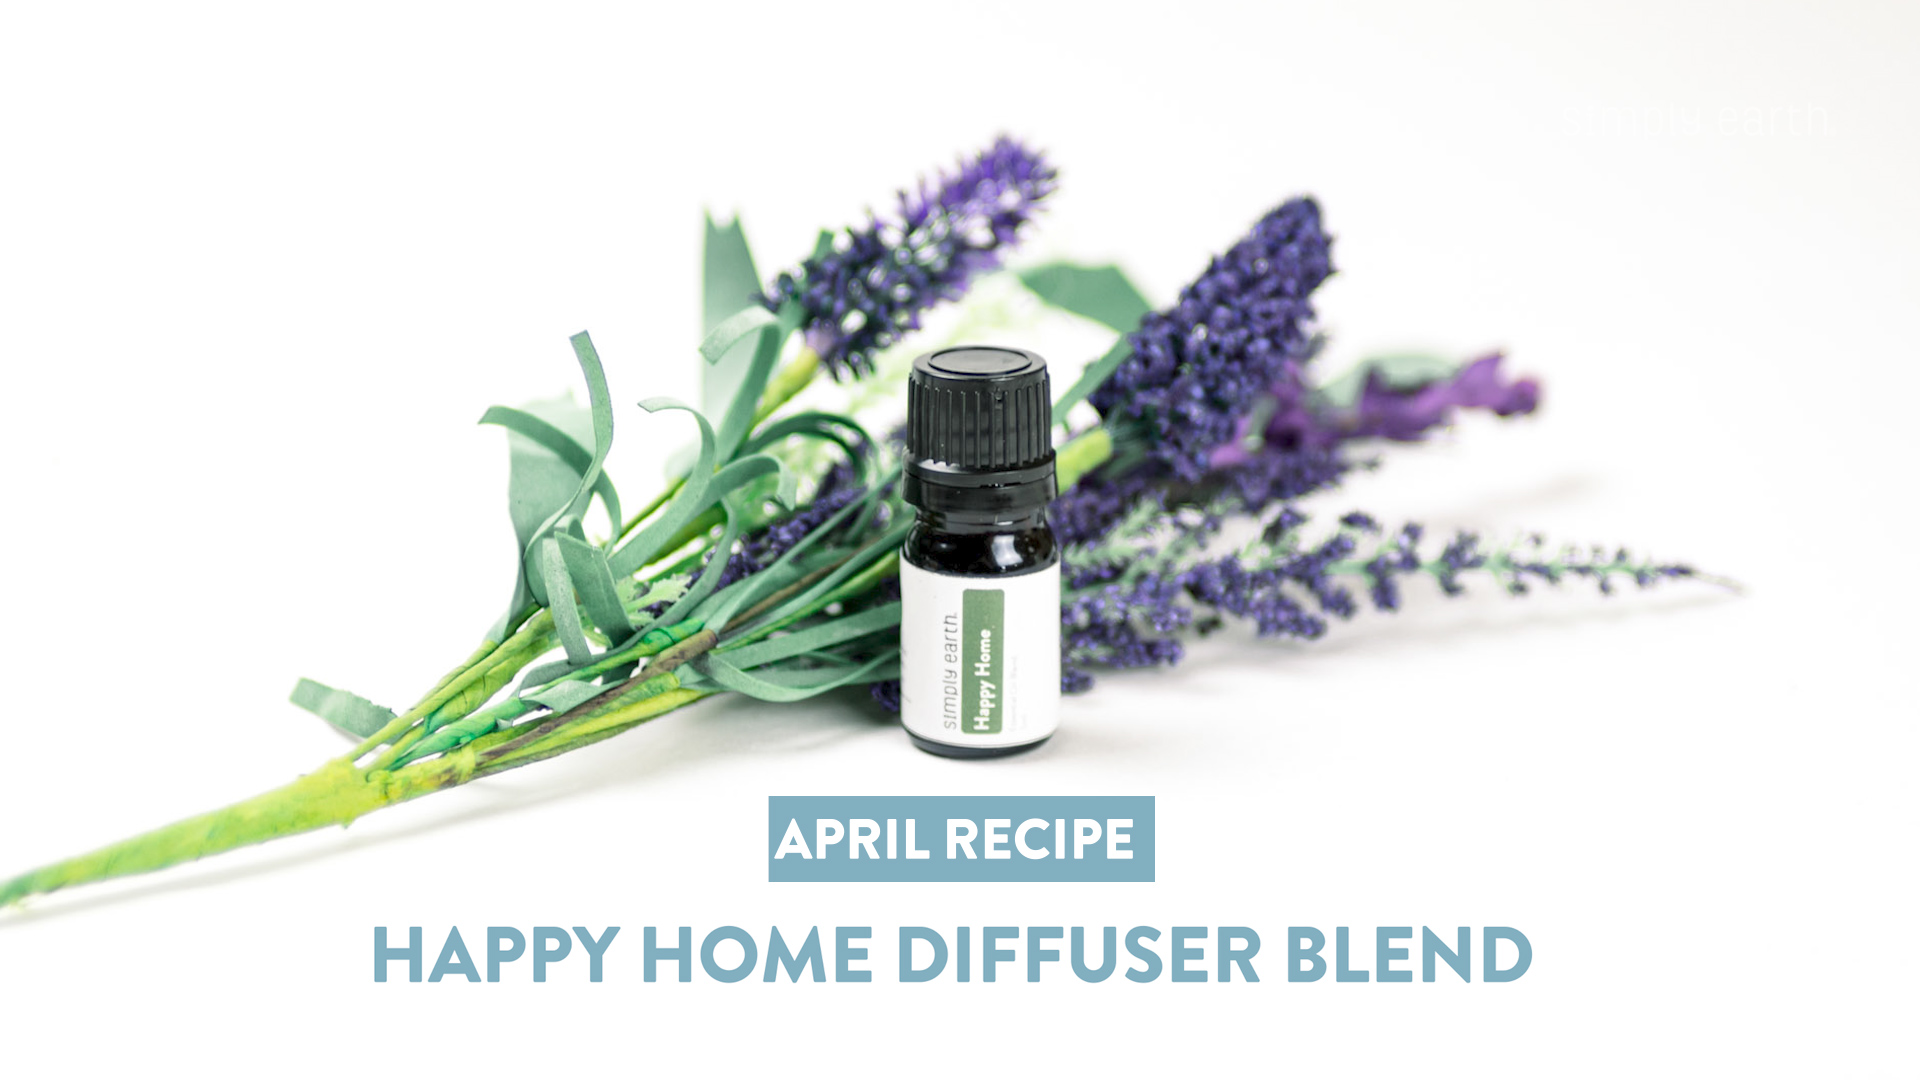 Happy Home Diffuser Blend